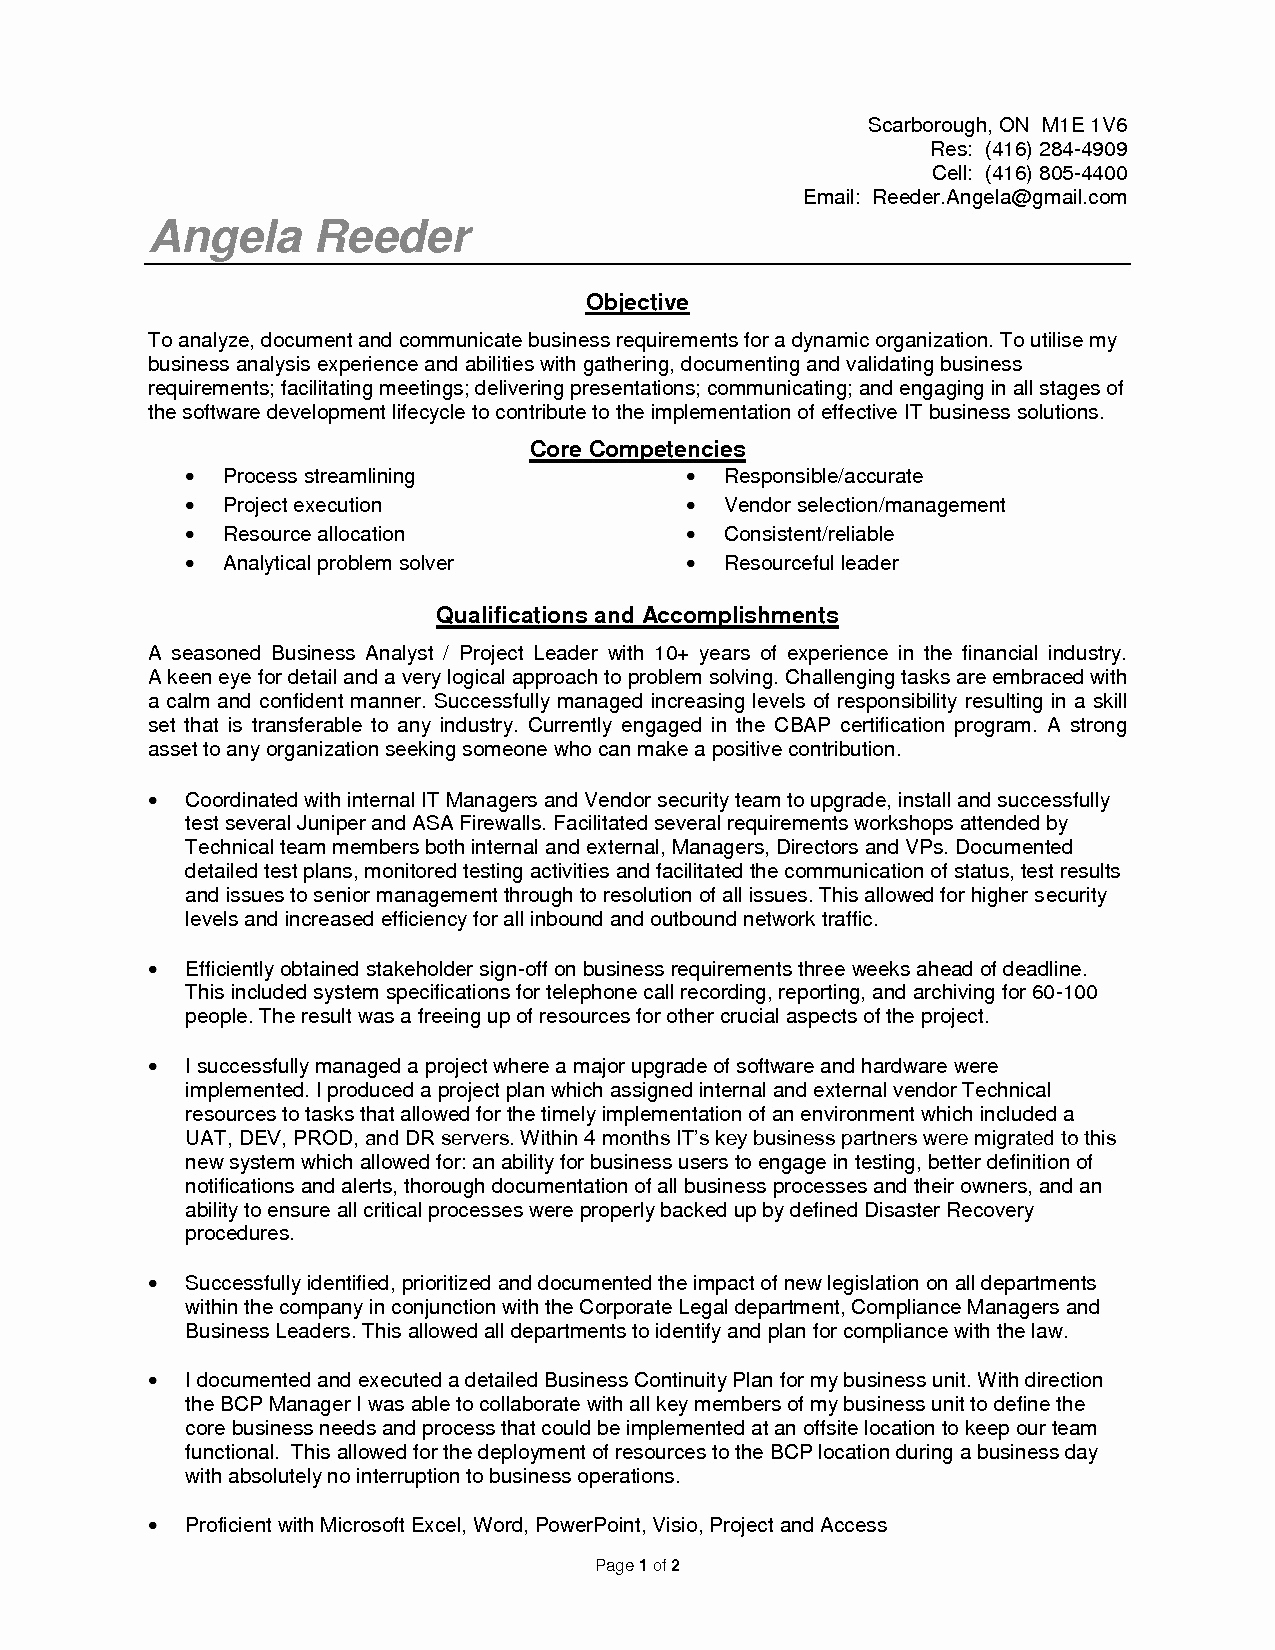 Healthcare Business Analyst Resume - Healthcare Business Analyst Resume Business Analyst Resume format